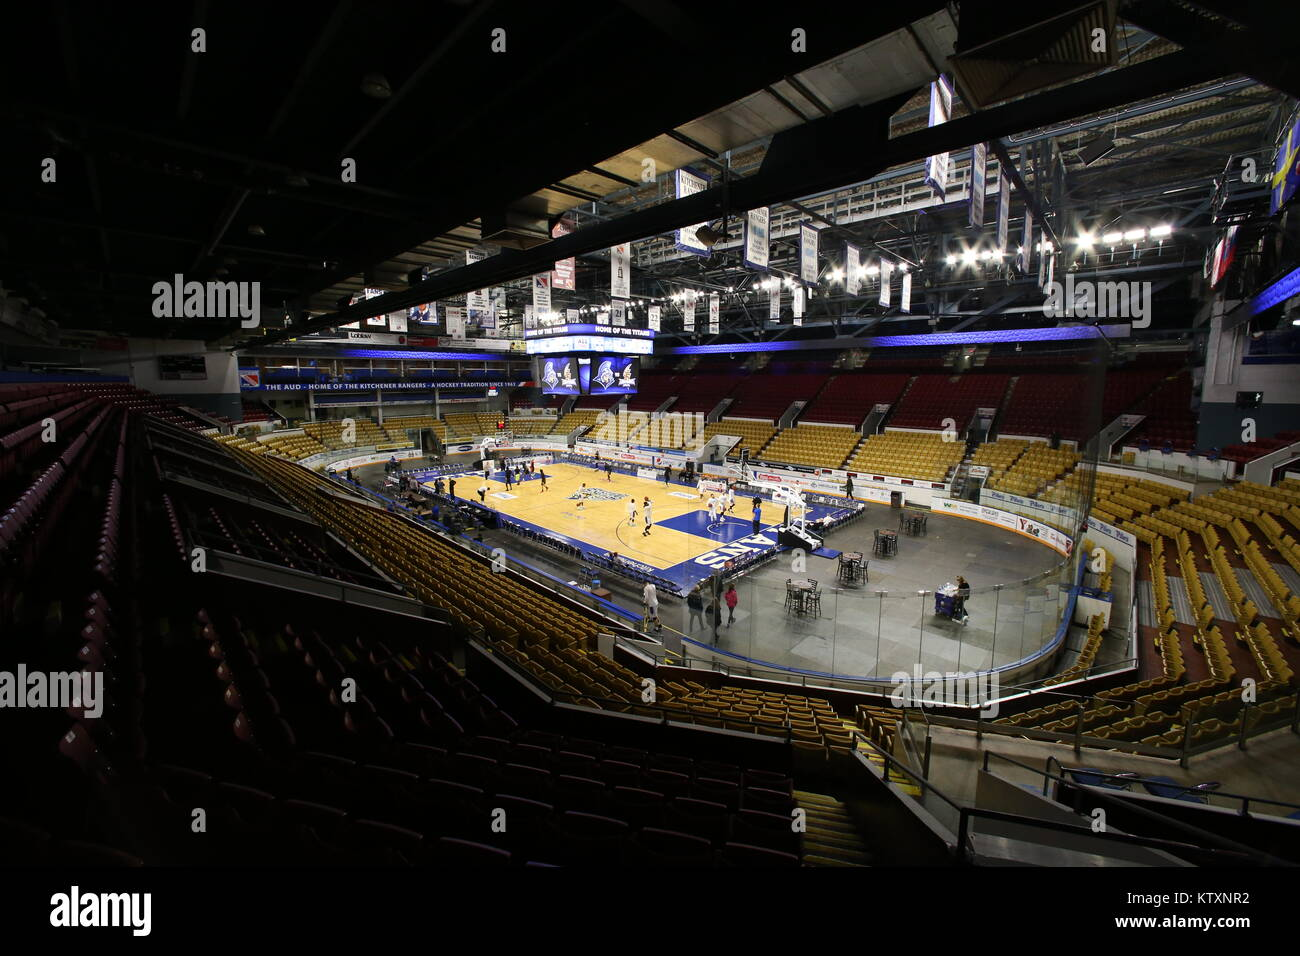 Kitchener Memorial Auditorium 2017 - 2018 Season - KW Titans and the London Lightning warm up for a game at the - Stock Image